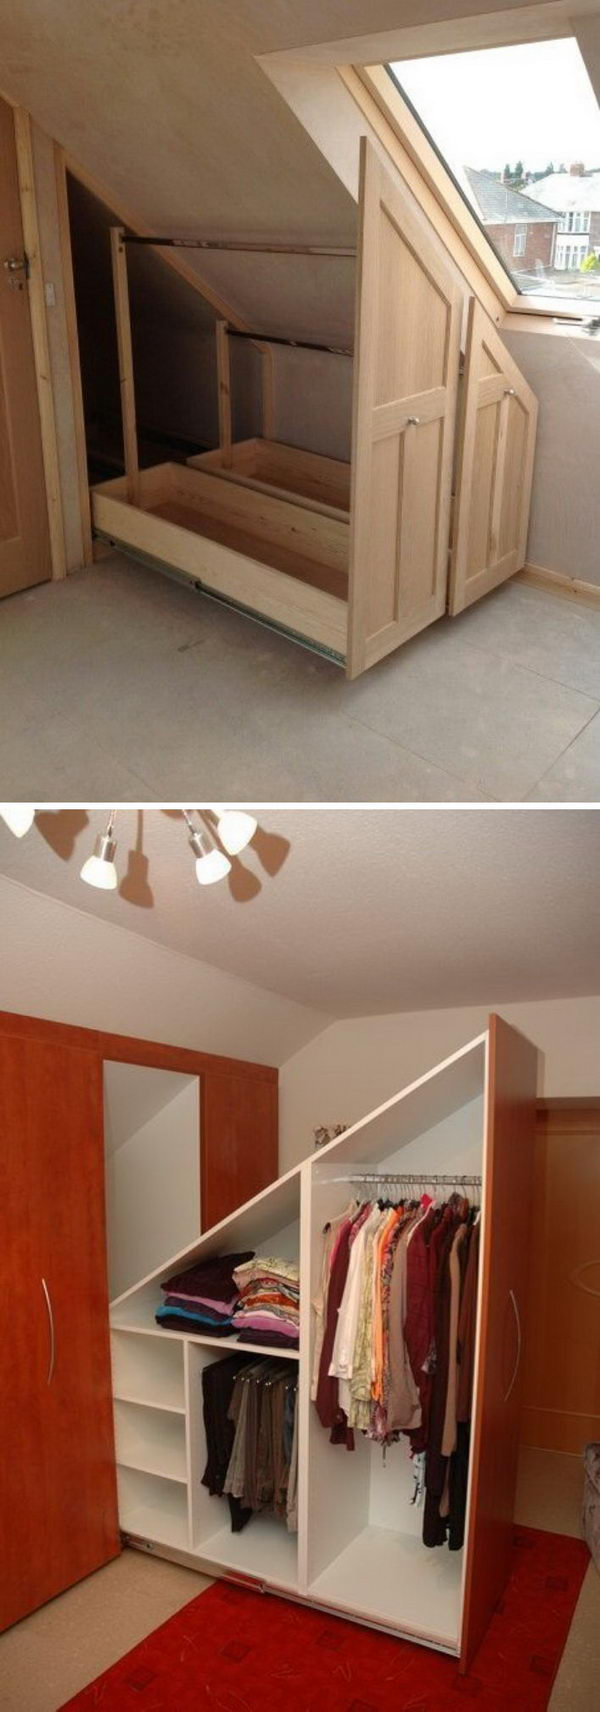 20+ Clever Storage Ideas For Your Attic - Hative